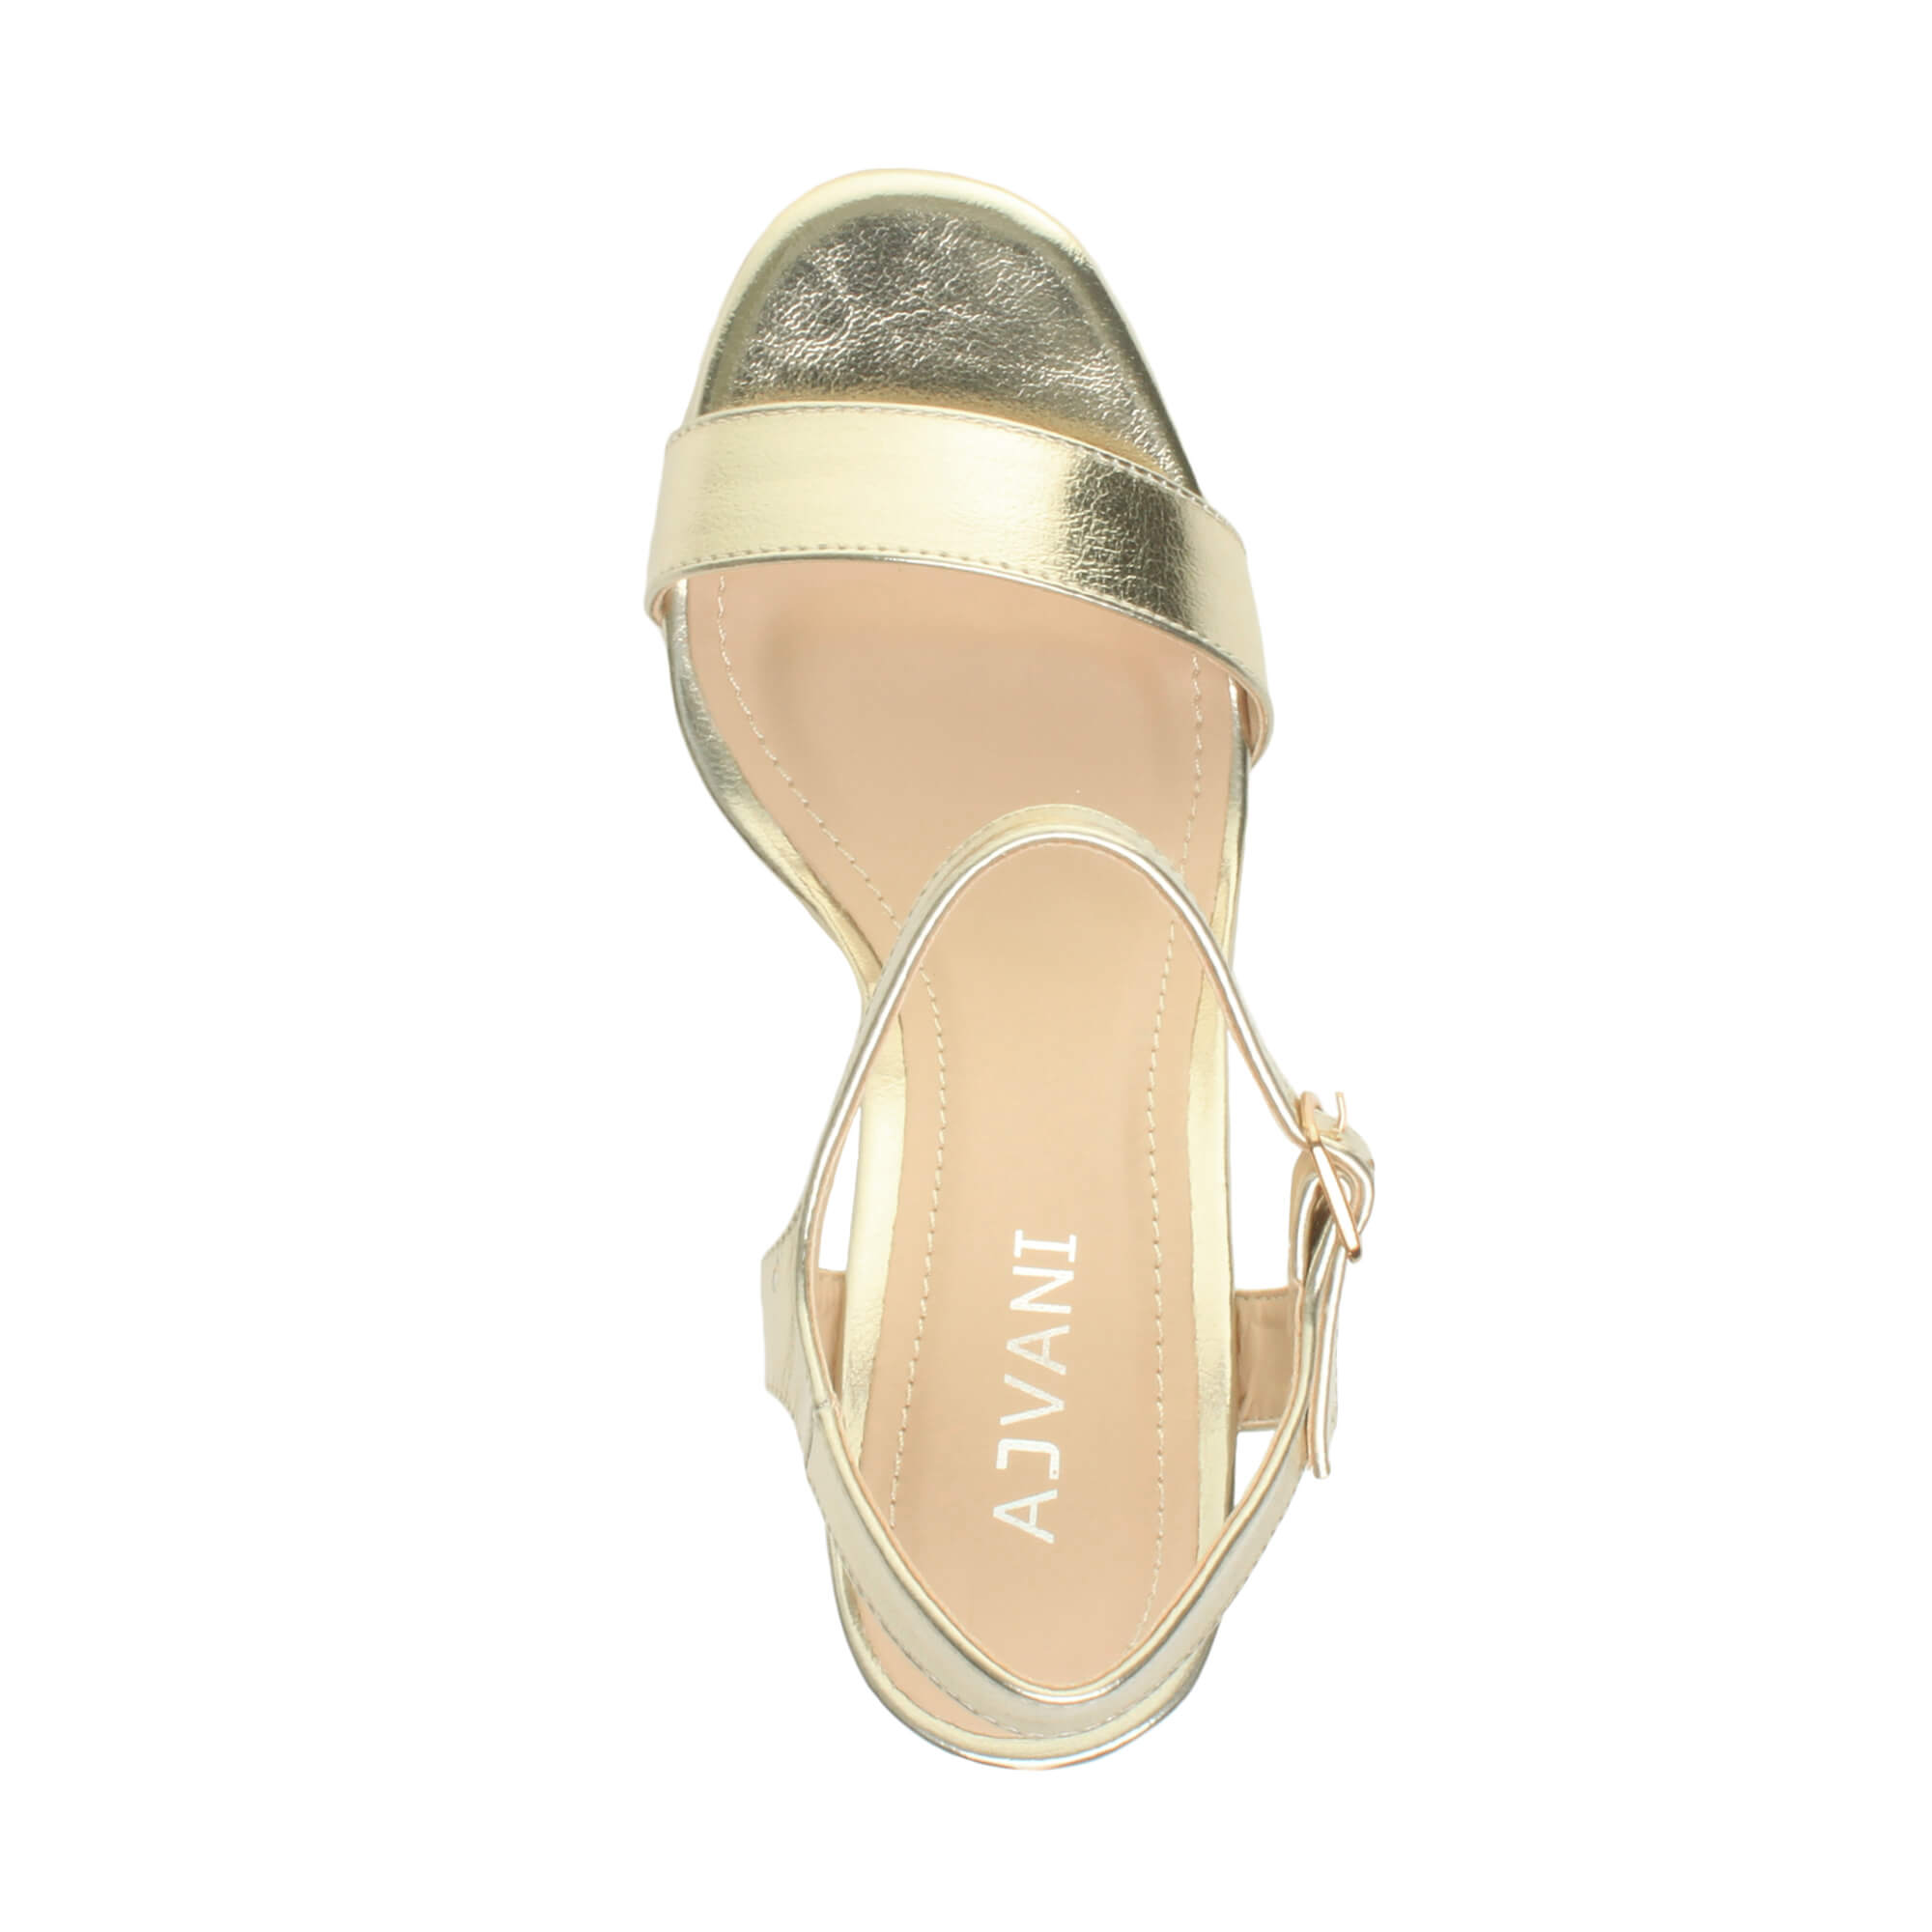 WOMENS-LADIES-HIGH-HEEL-BUCKLE-STRAPPY-BASIC-BARELY-THERE-SANDALS-SHOES-SIZE thumbnail 49